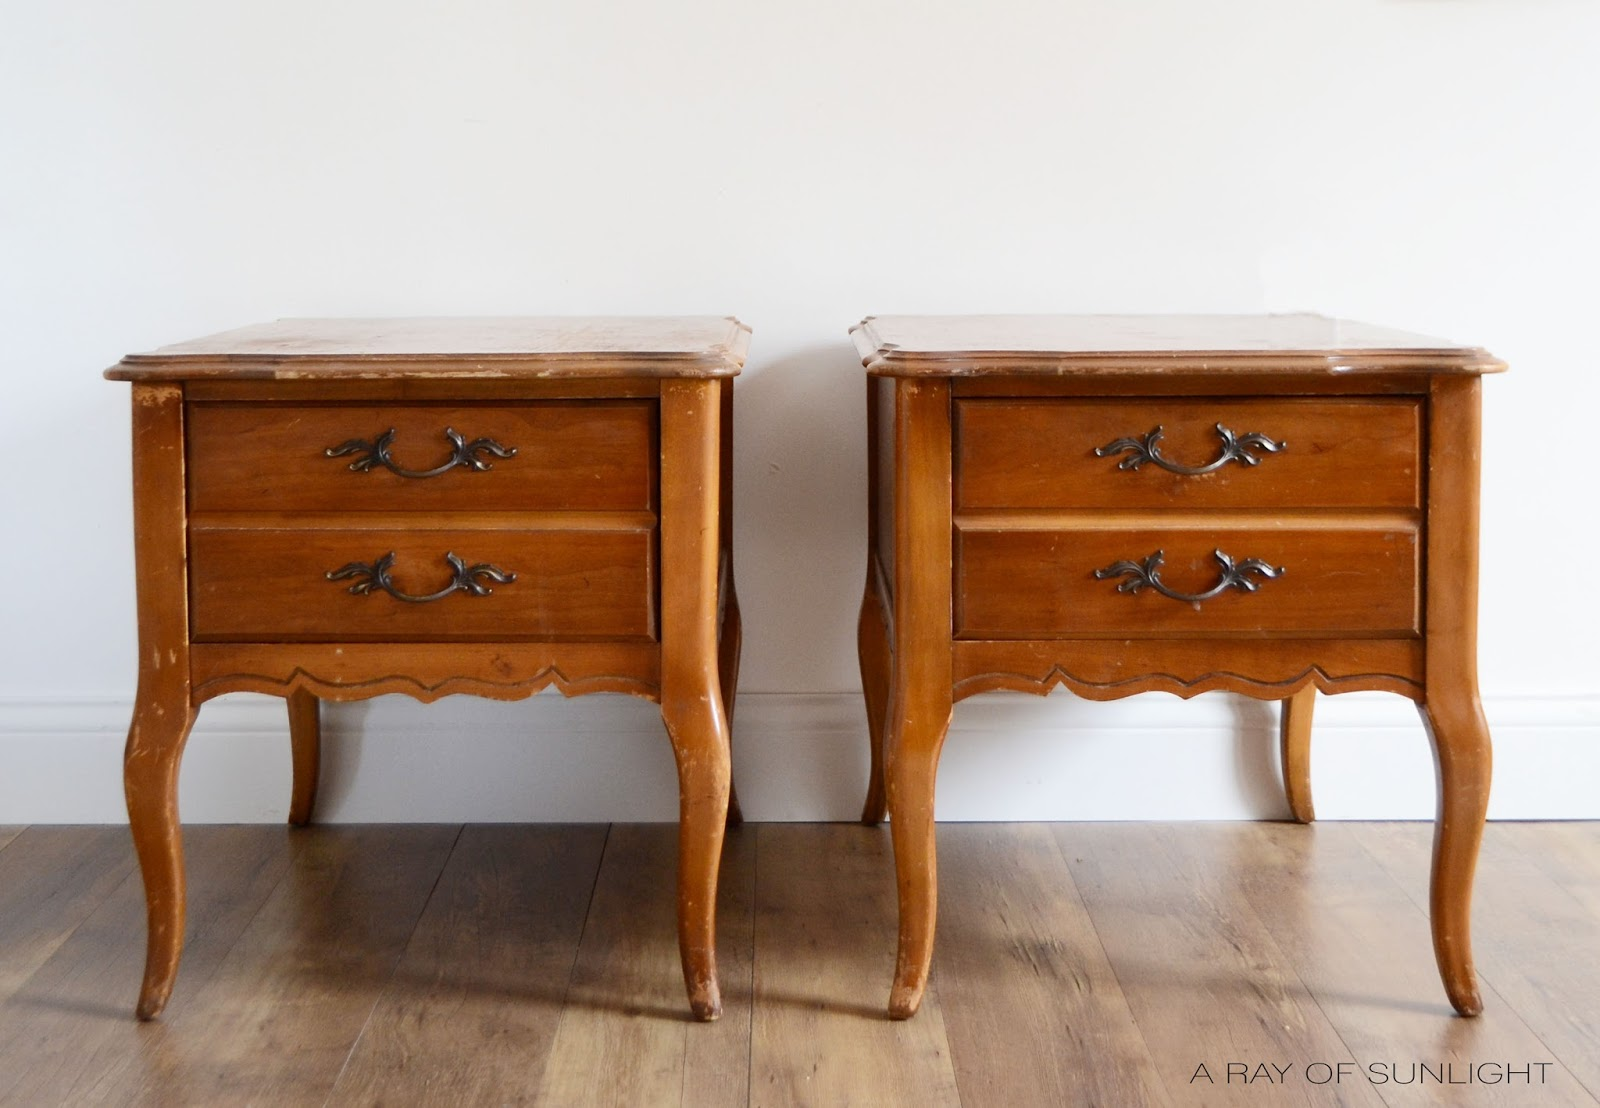 French Provincial Nightstands in Old Blue Amulent Ceramic Based Paint and General Finishes Van Dyke Brown Glaze